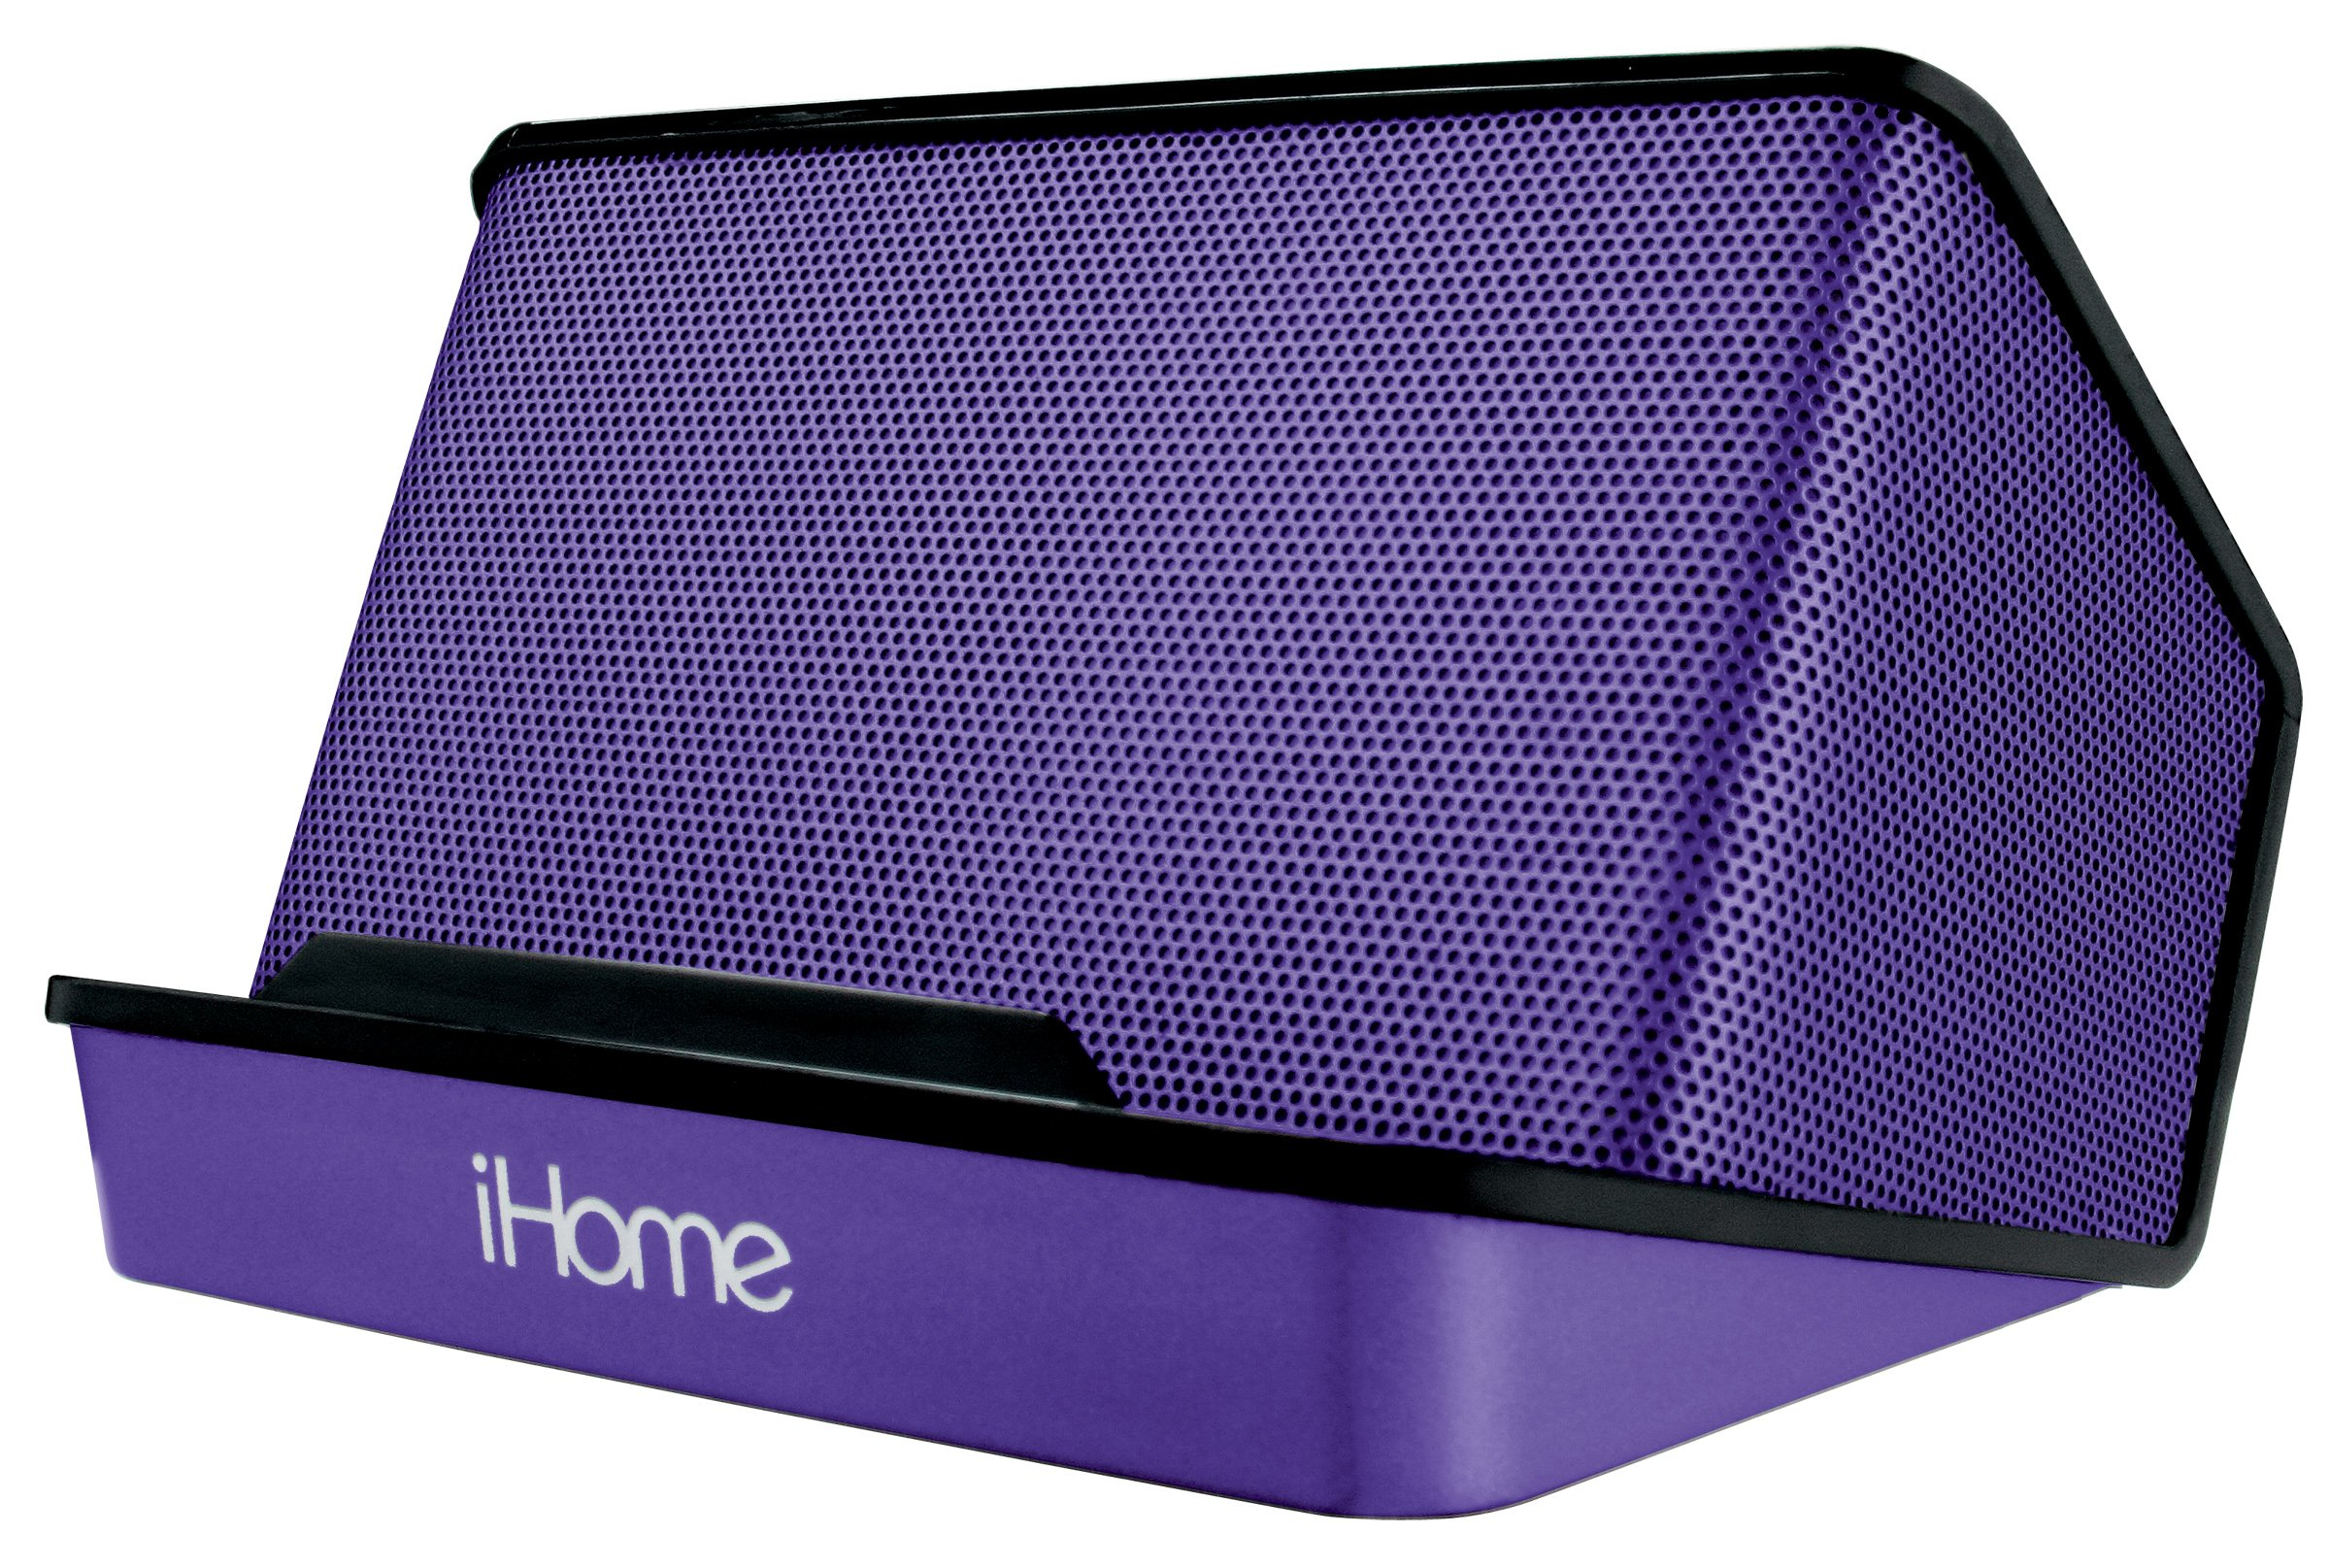 iHome Portable Rechargeable Stereo Speaker System - Purple by iHome